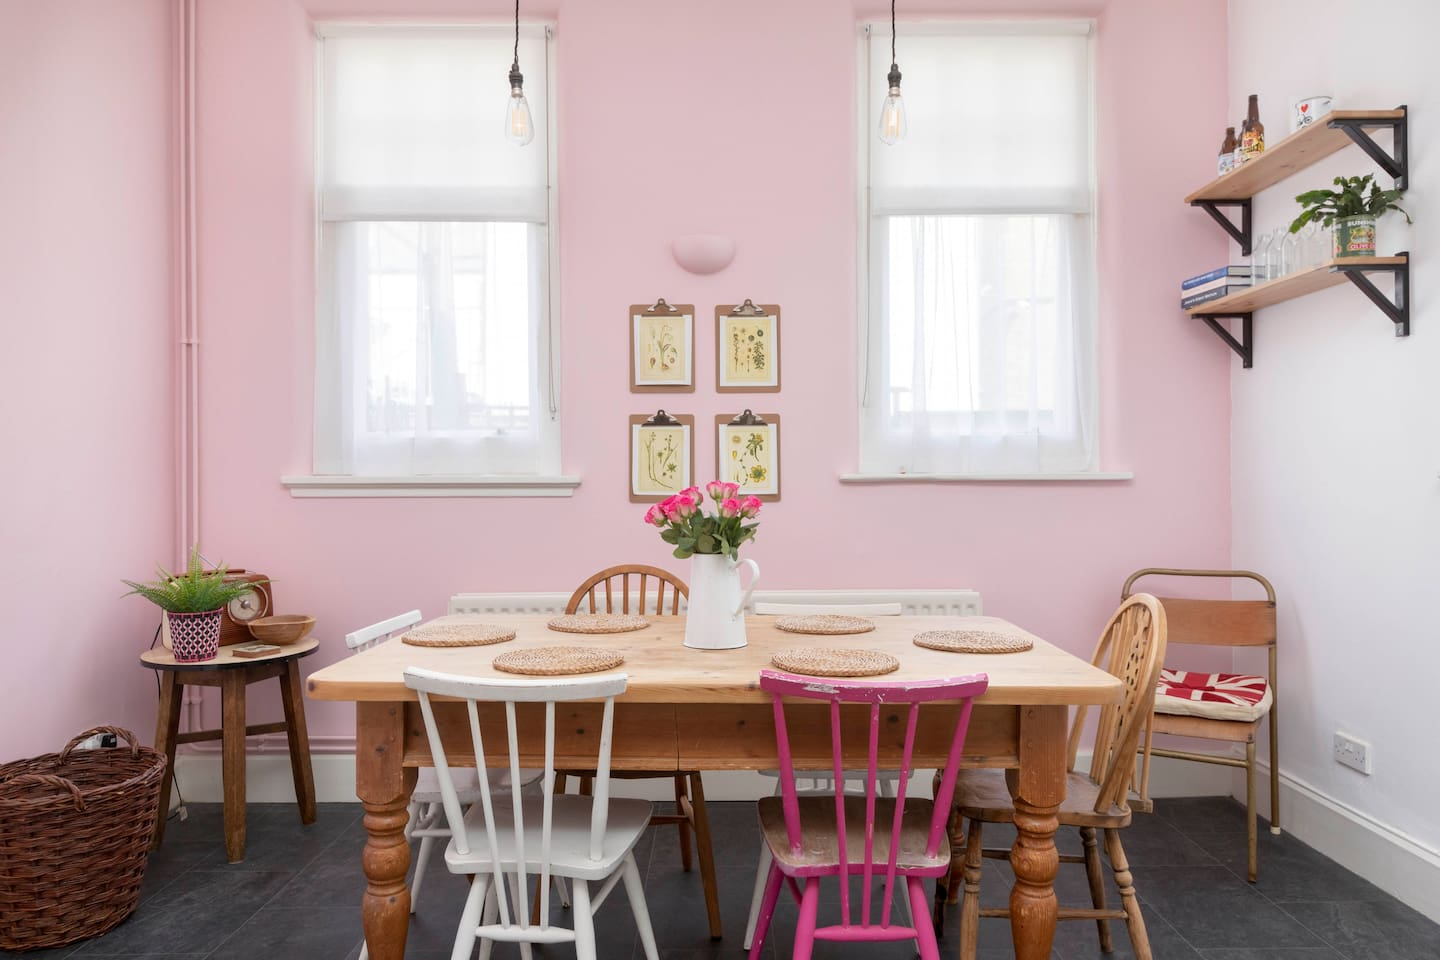 Farmhouse table and vintage chairs